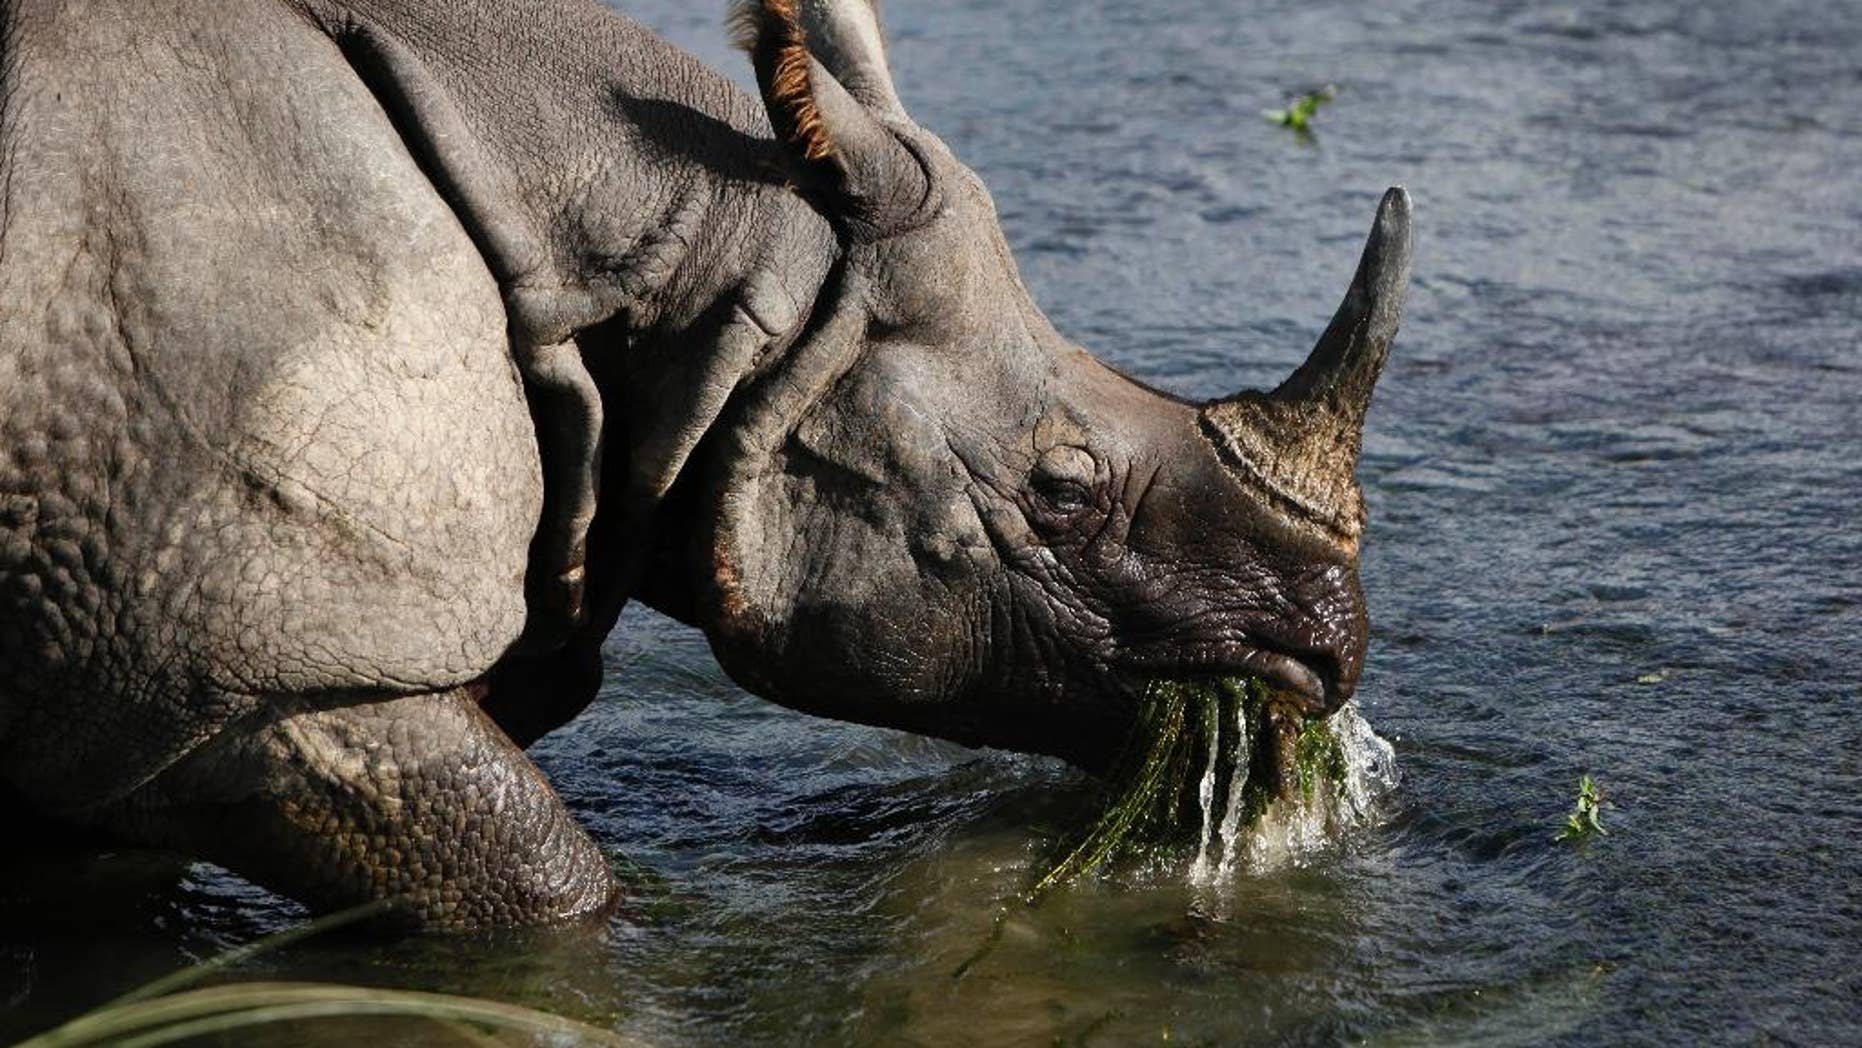 A great one-horned rhino eats water plants from a river in the Janakauli community forest bordering Chitwan National Park, Nepal, Aug. 1, 2010.